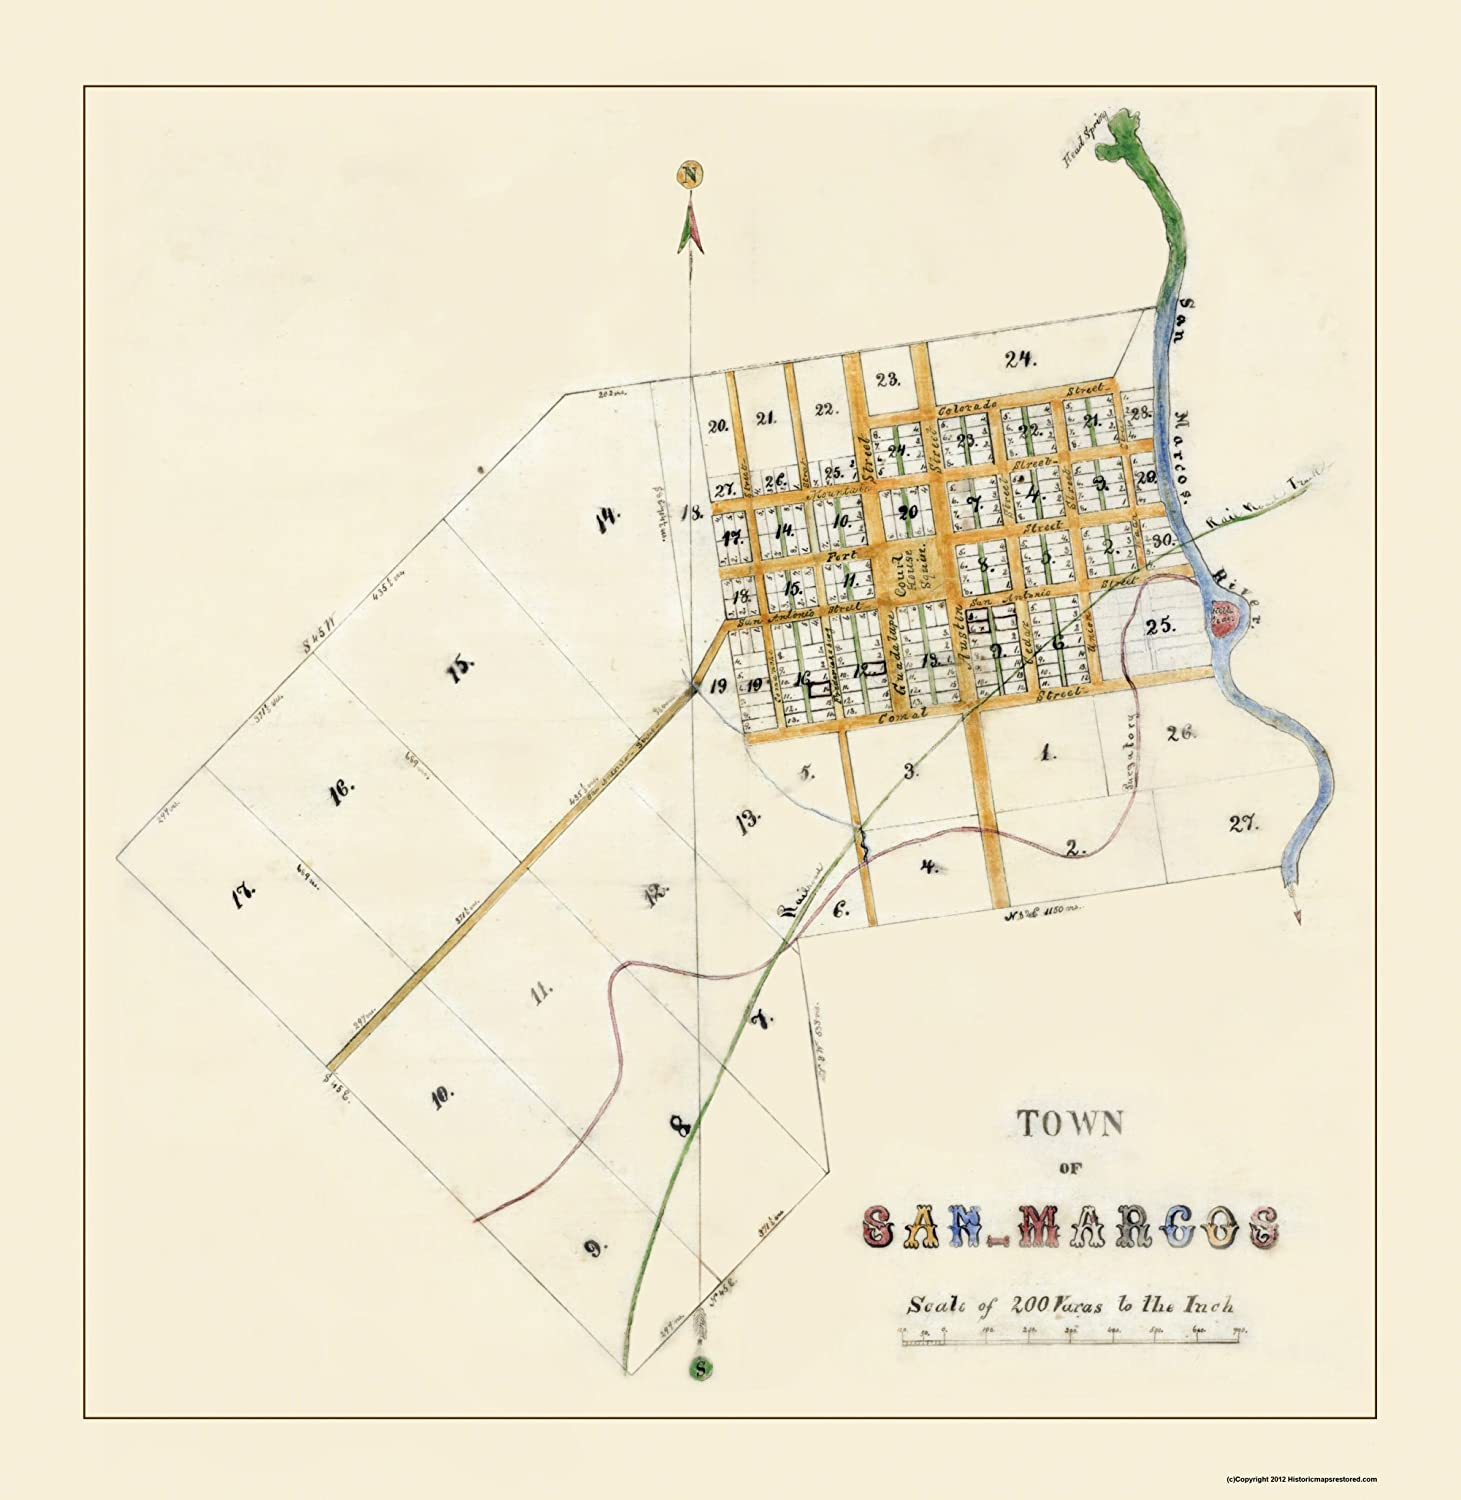 Amazon.com: Old City Map - San Marcos Texas - 1881 - 23 x ... on 123 san marcos texas map, prospect park san marcos map, downtown san marcos tx map, float the river san marcos tx map, austin city map, blanco river san marcos tx map,